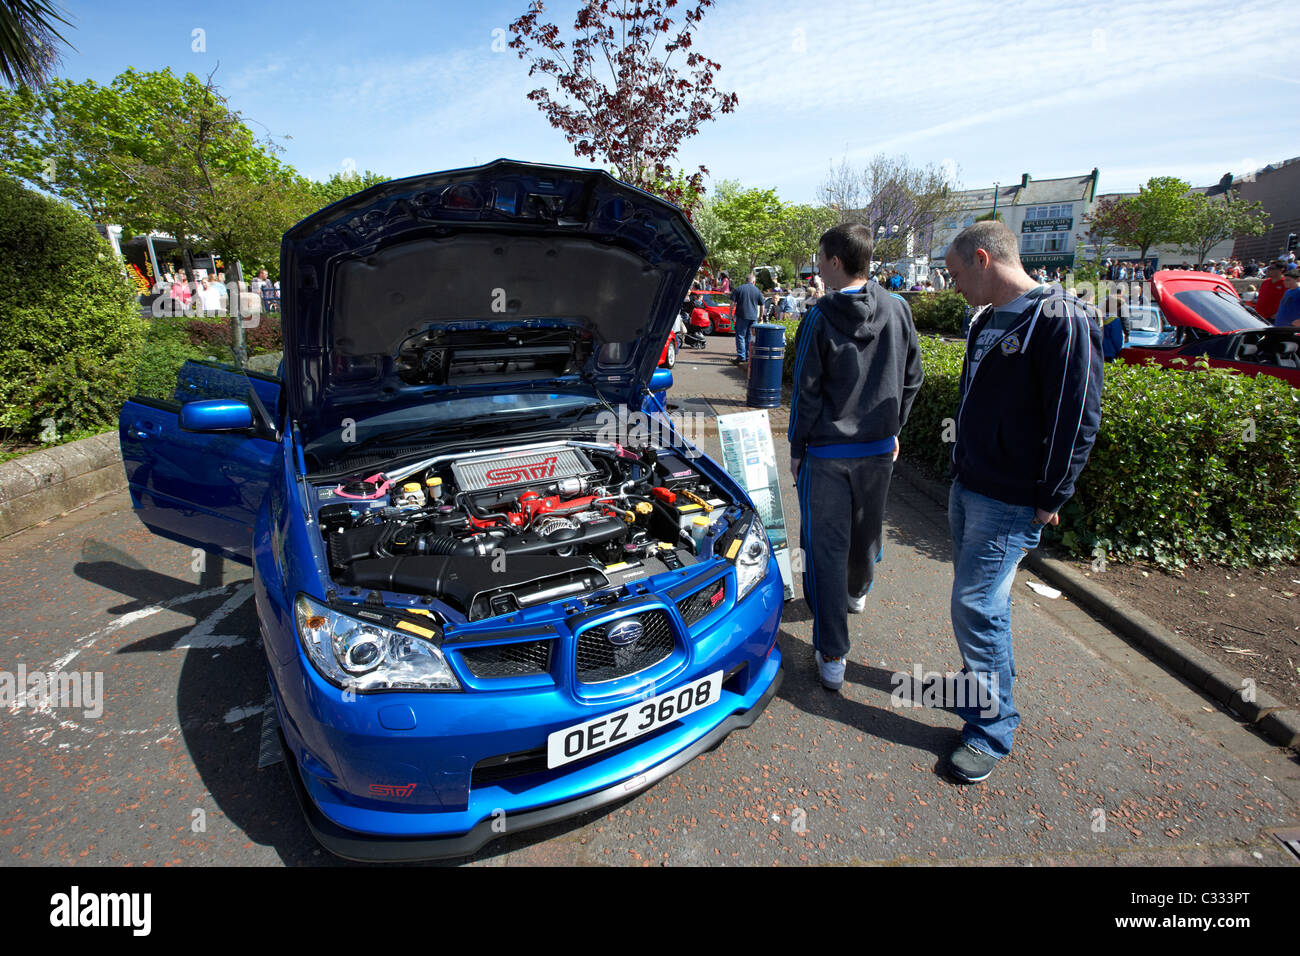 Two Men Walk Around A Subaru Impreza Wrx At A Modified Car Show In The Uk